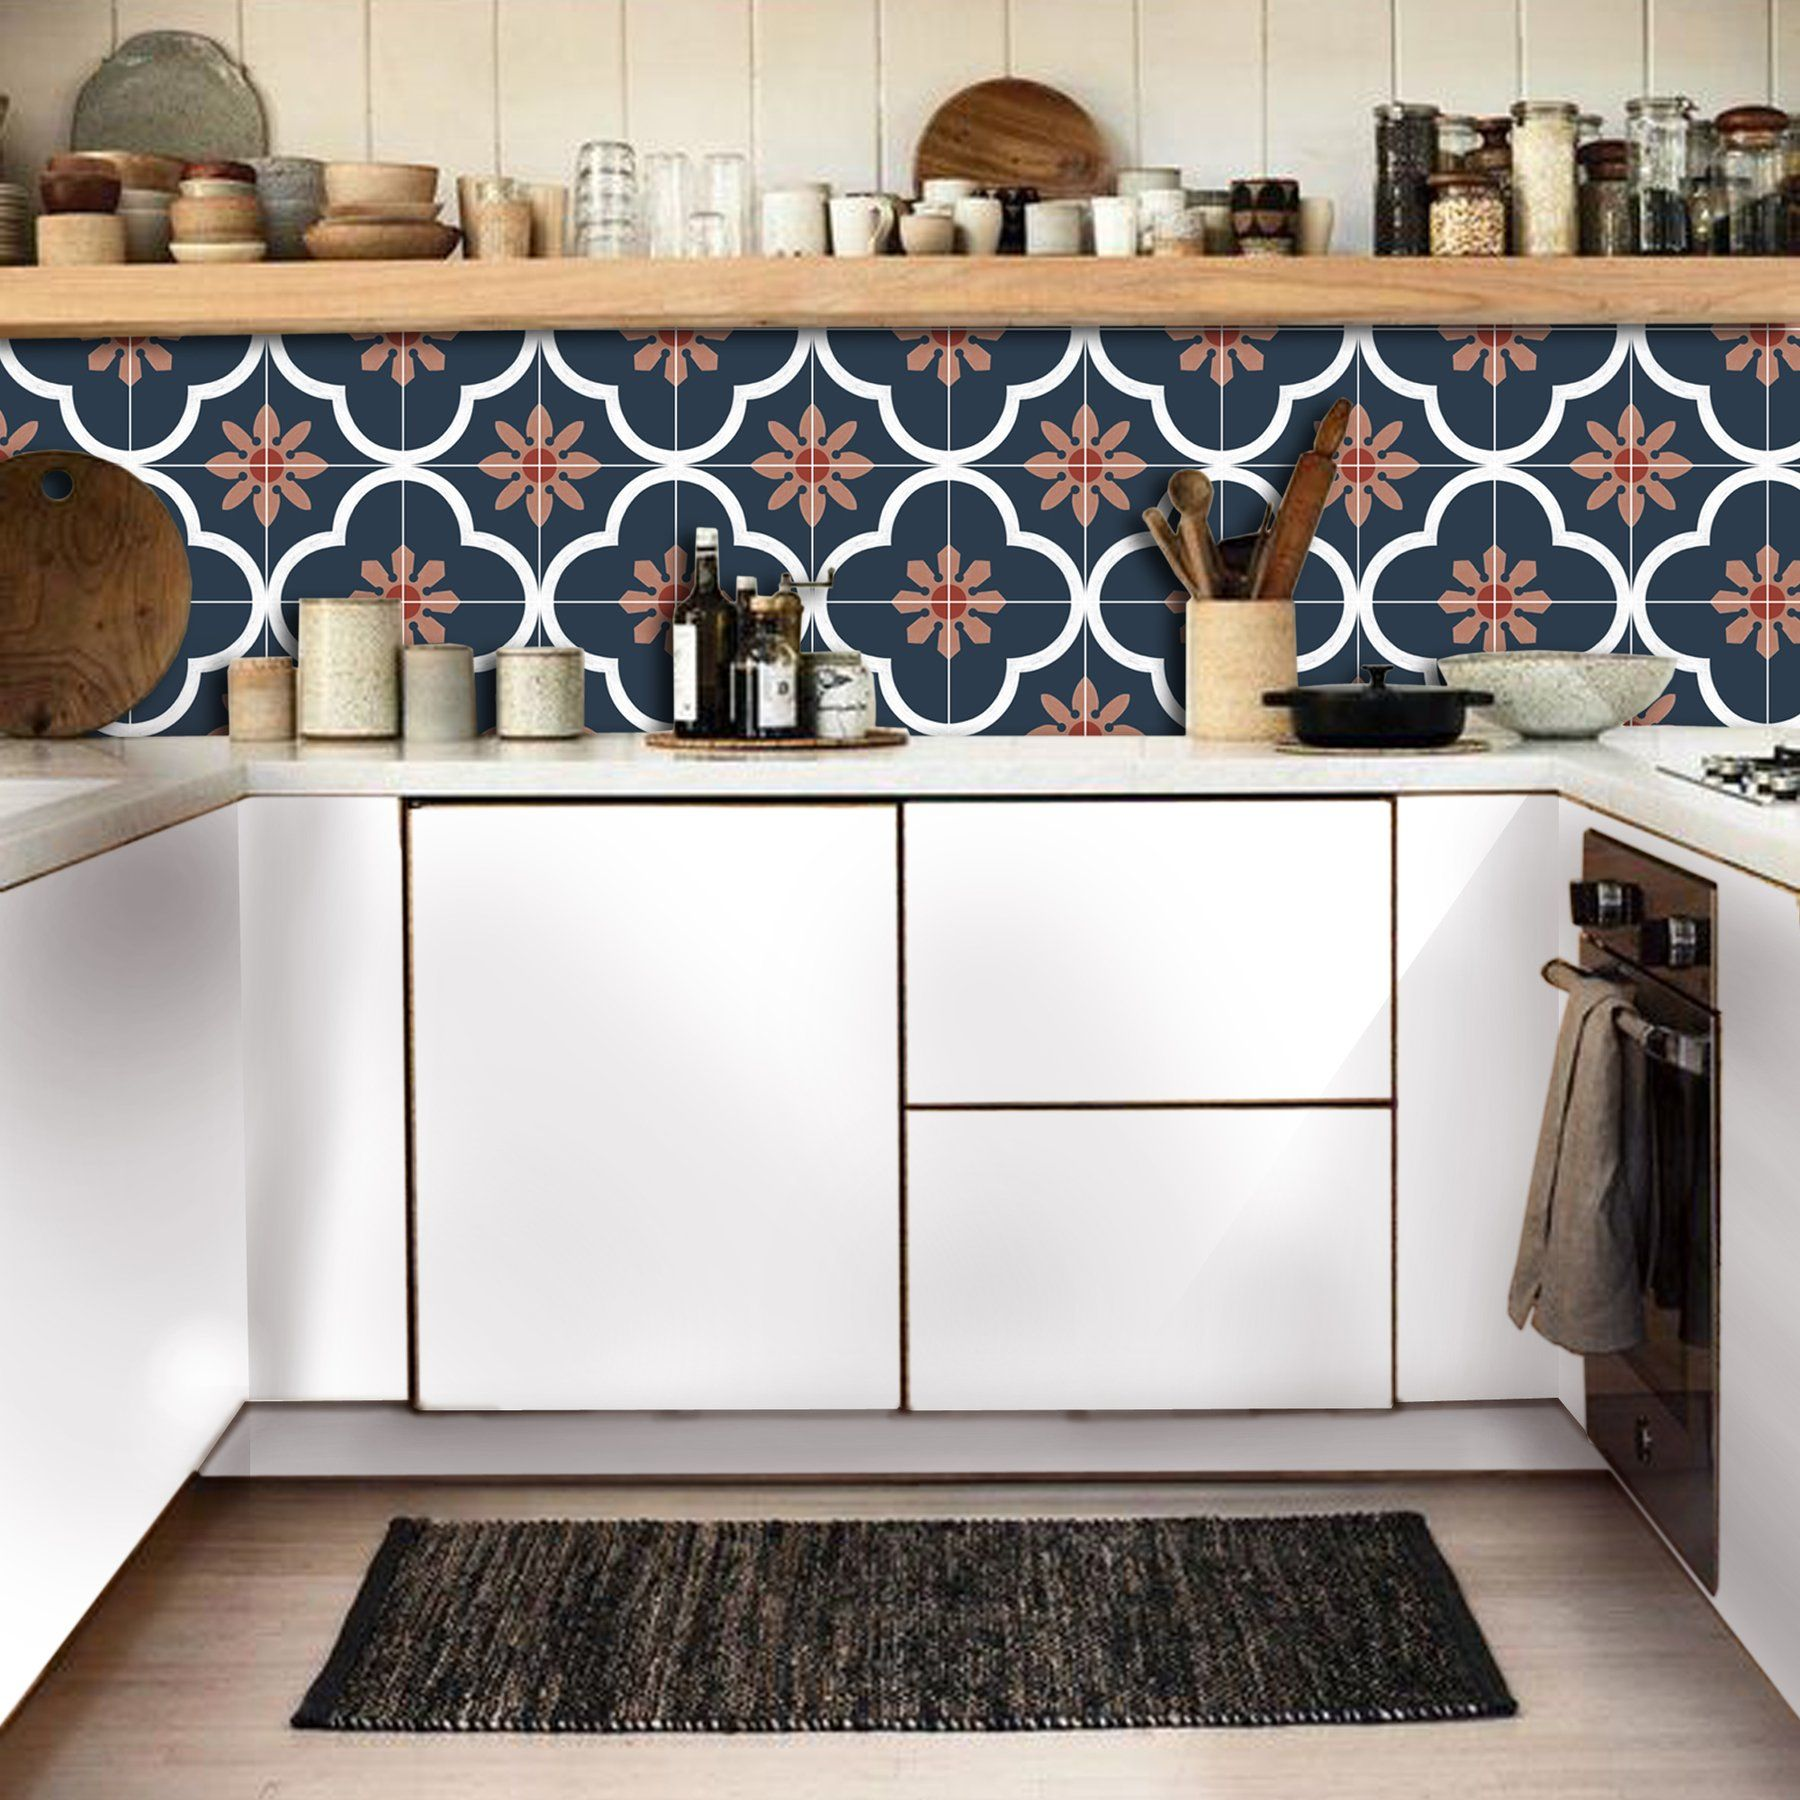 Pin On Bohemian Kitchen Backsplash